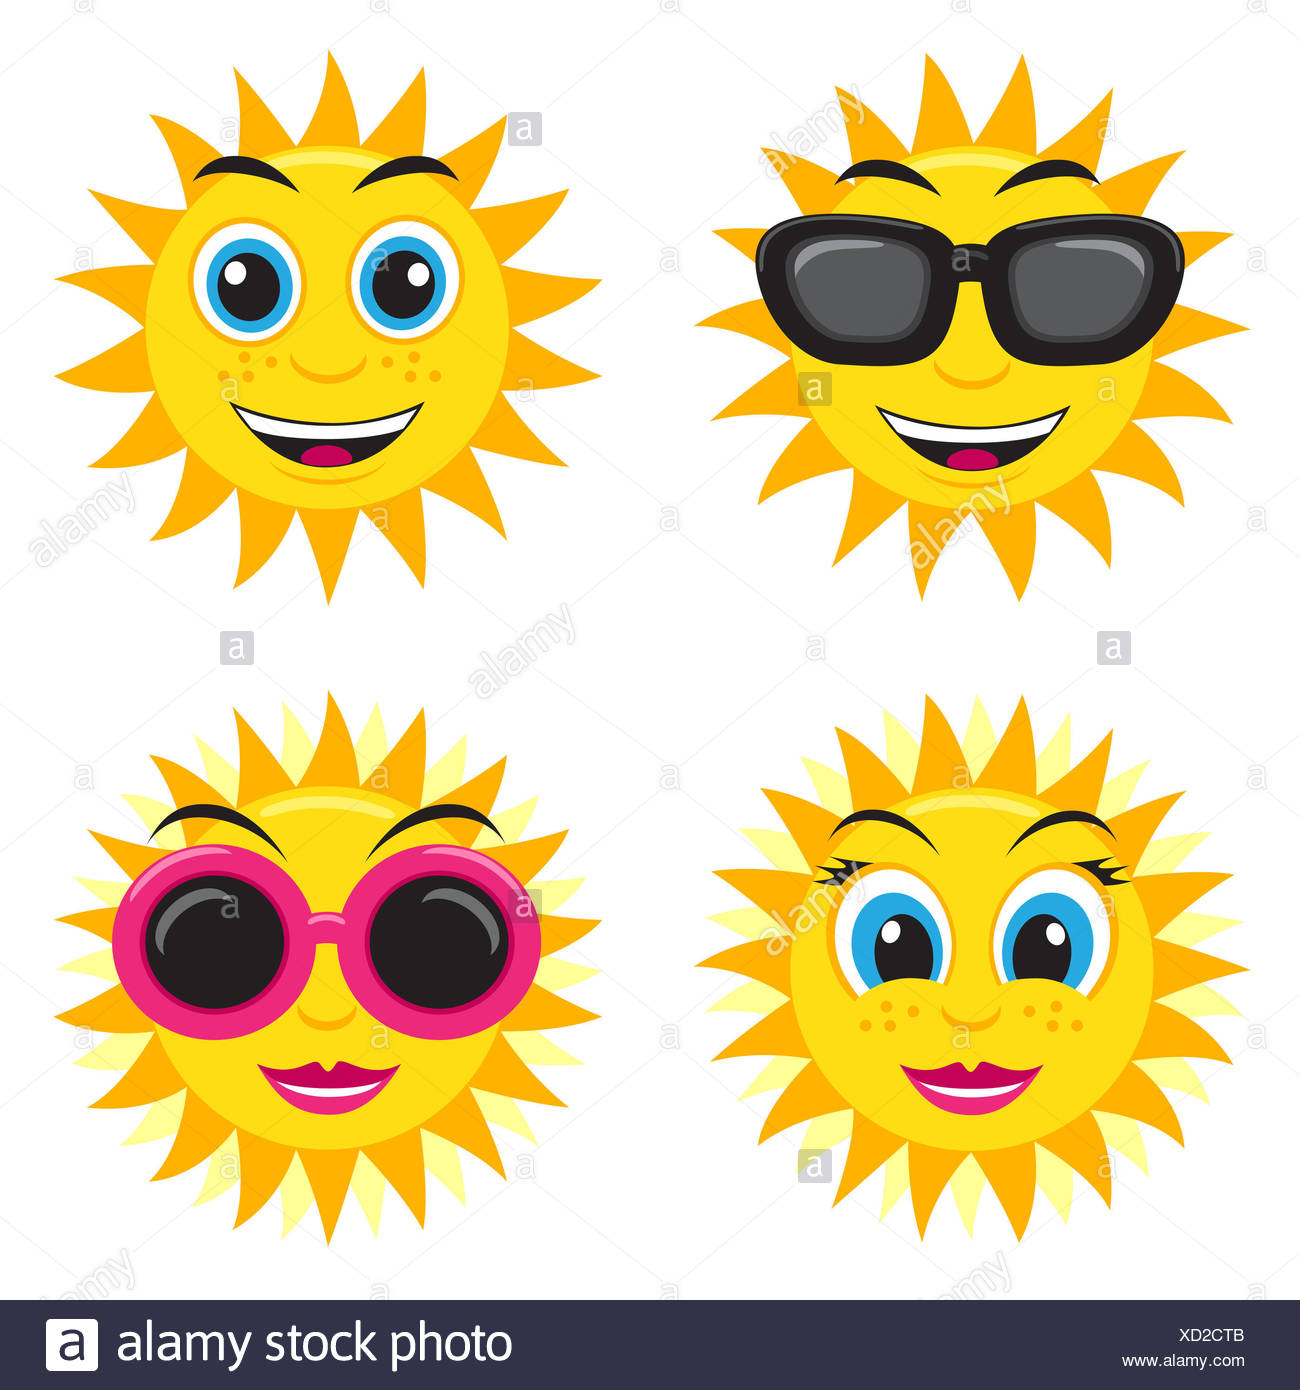 Illustration of the he and she sun with glasses and different face expressions - Stock Image